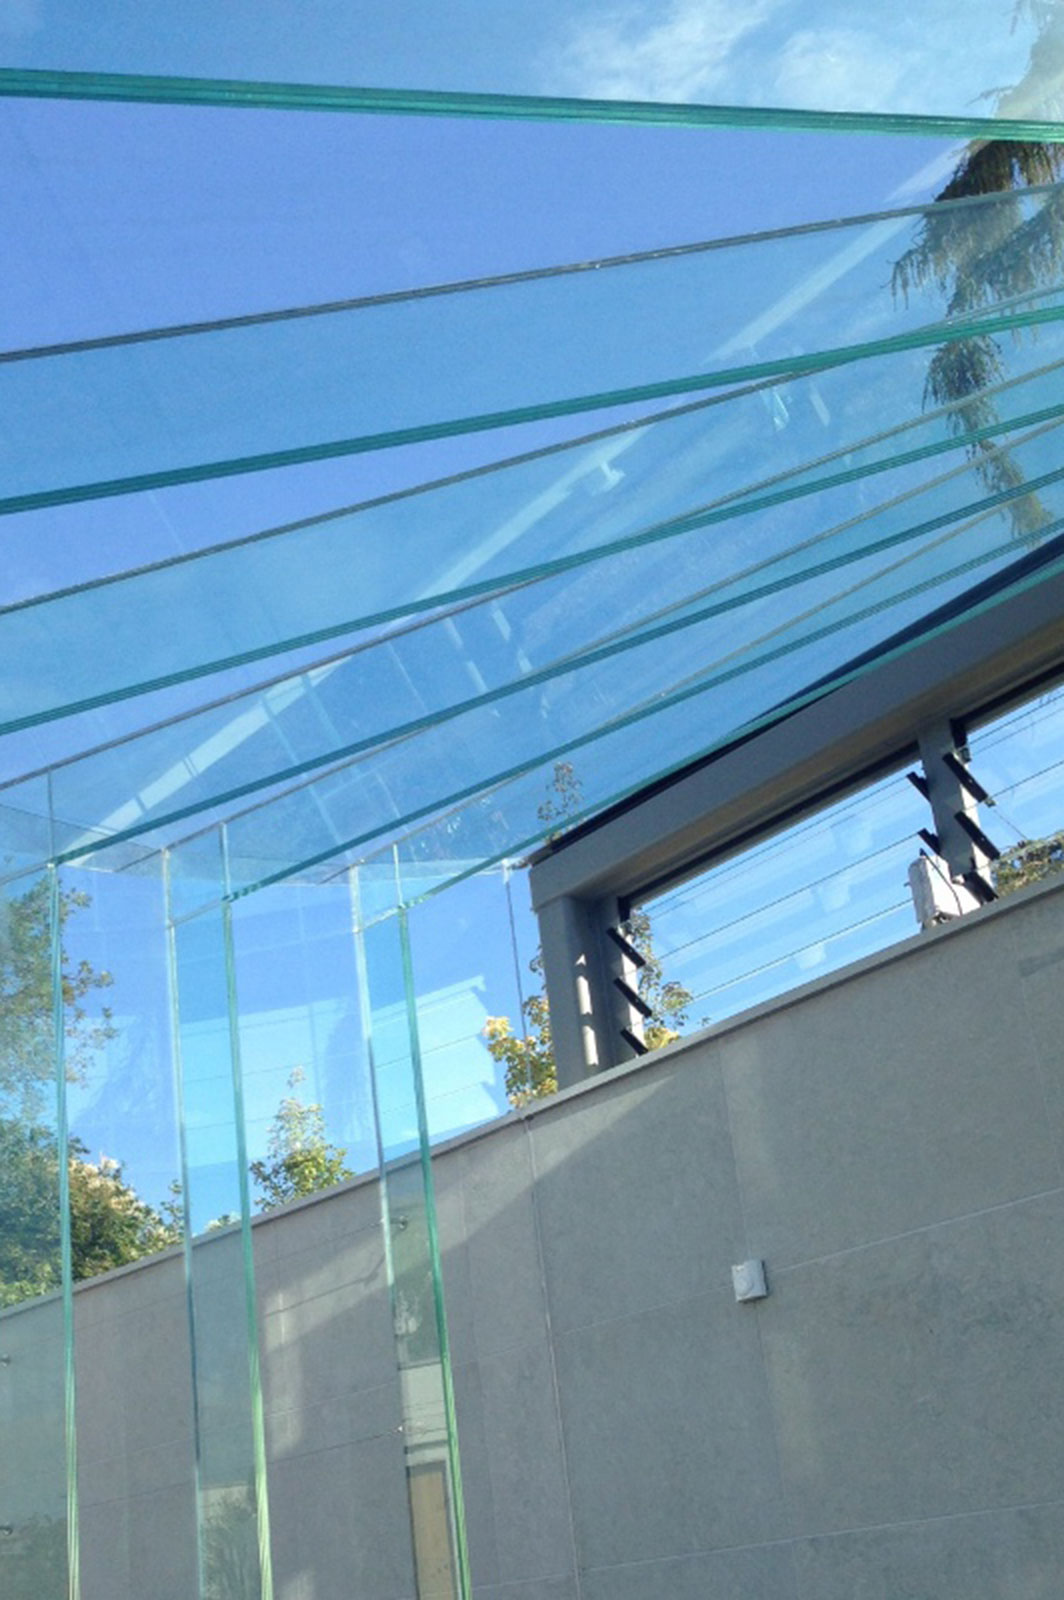 Structural Glass Lobby with Glass Beams and Fins, Glass Greenhouse